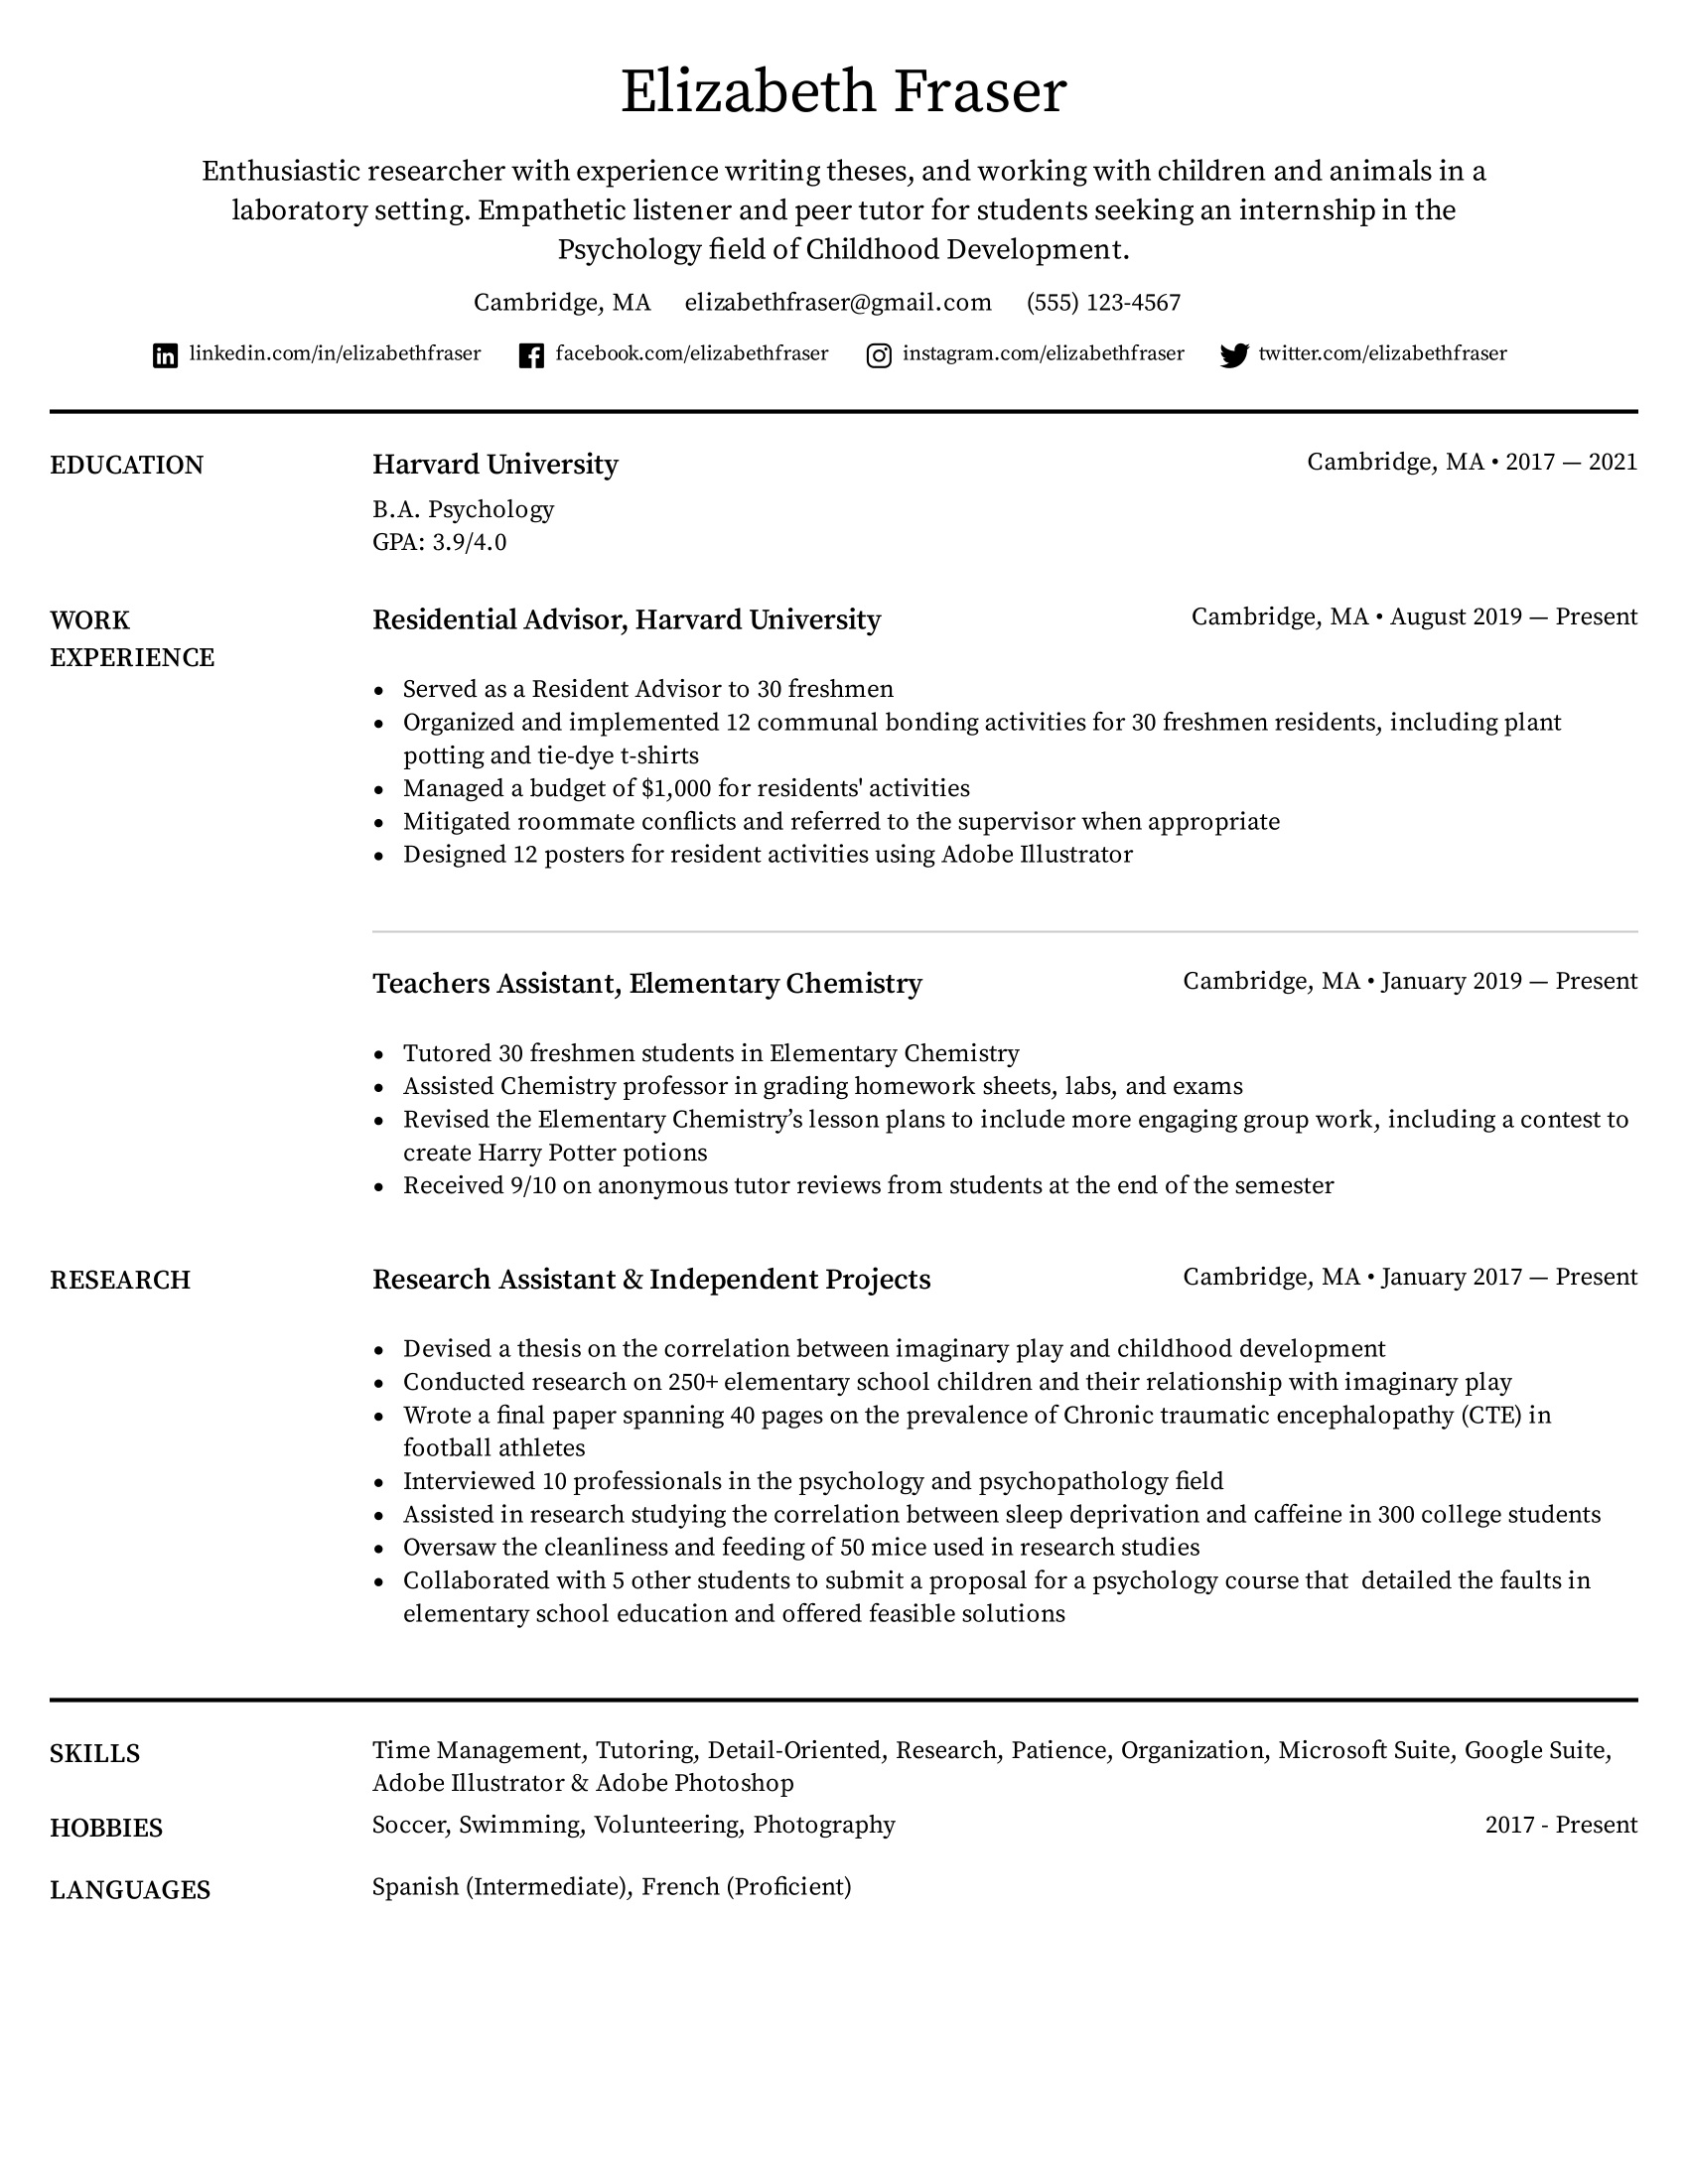 Sample resume for summer job college student. How To List Education On A Resume In 2021 With Examples Tips Easy Resume